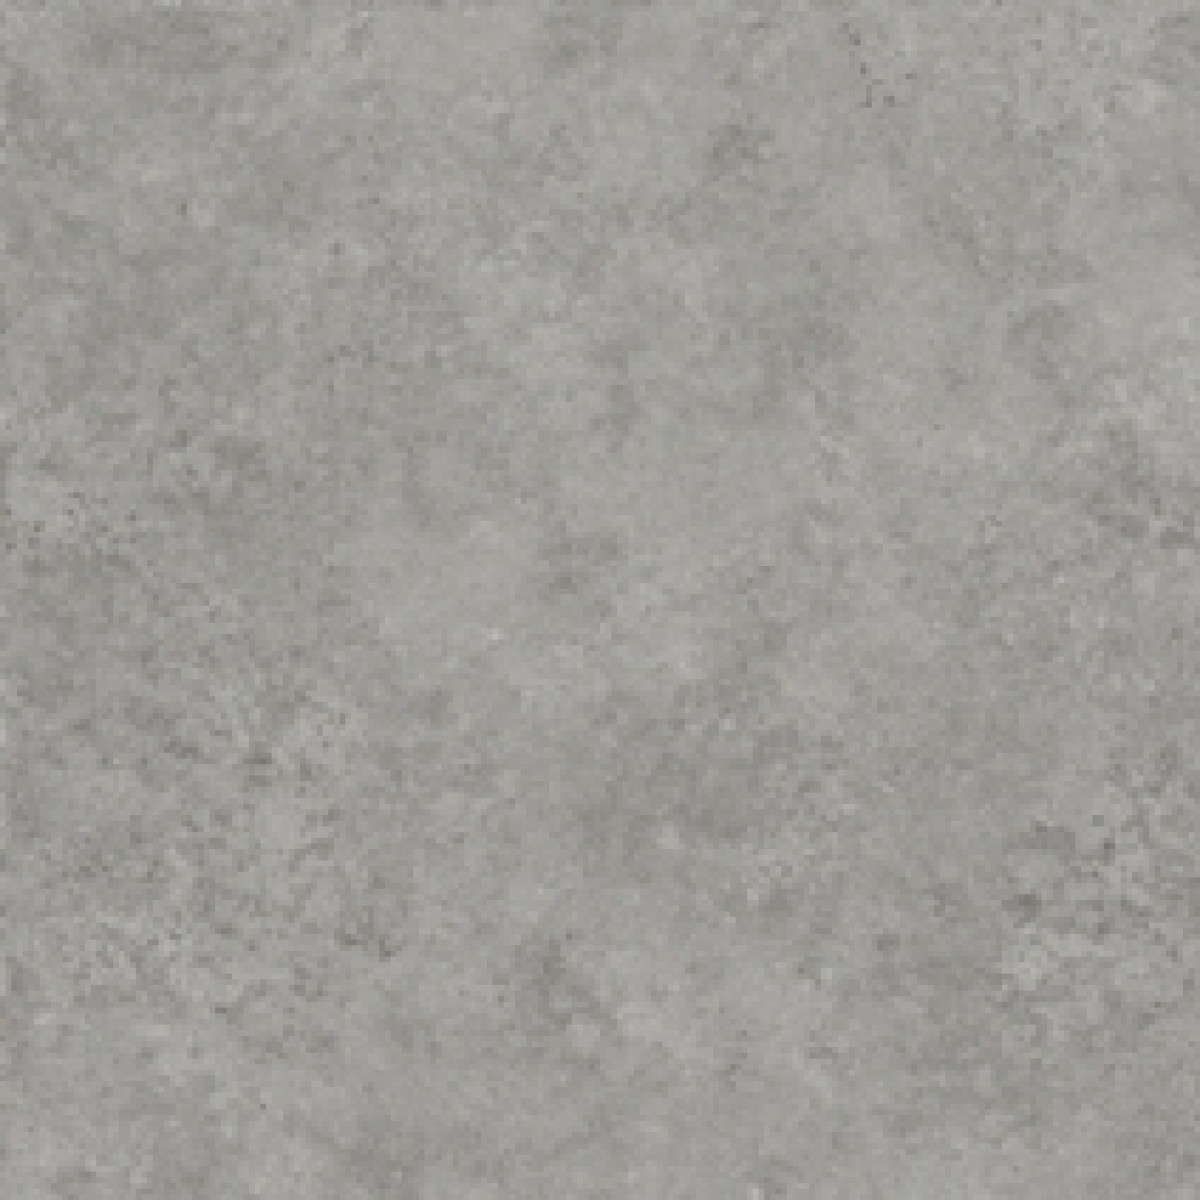 7202_cool_grey_concrete_1